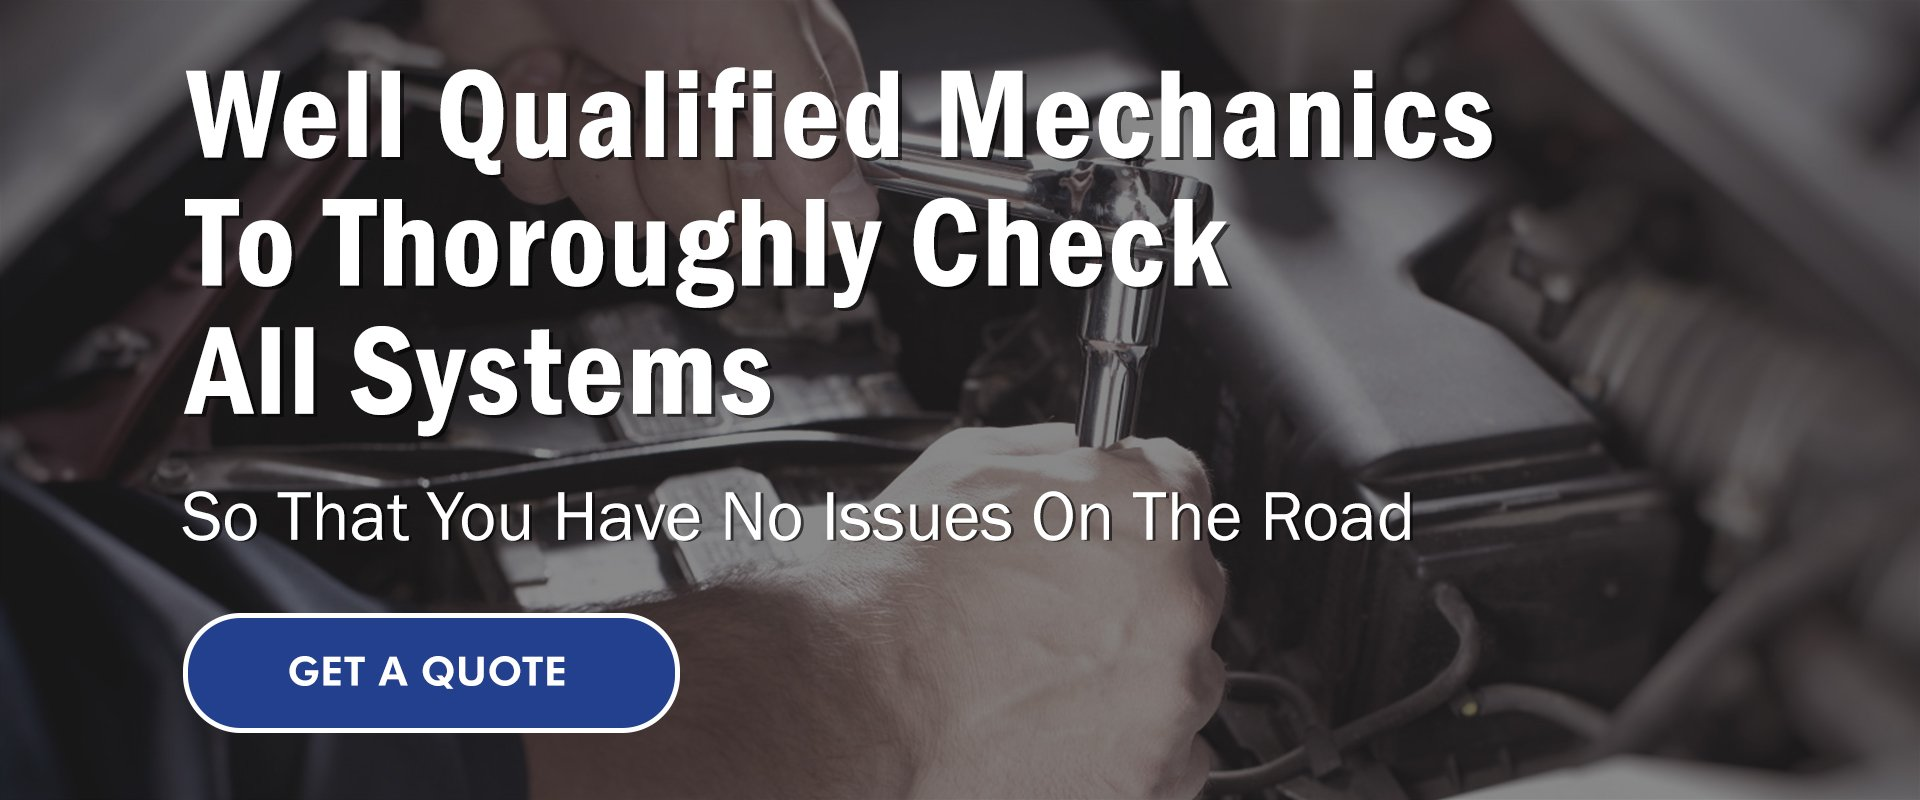 Qualified mechanics